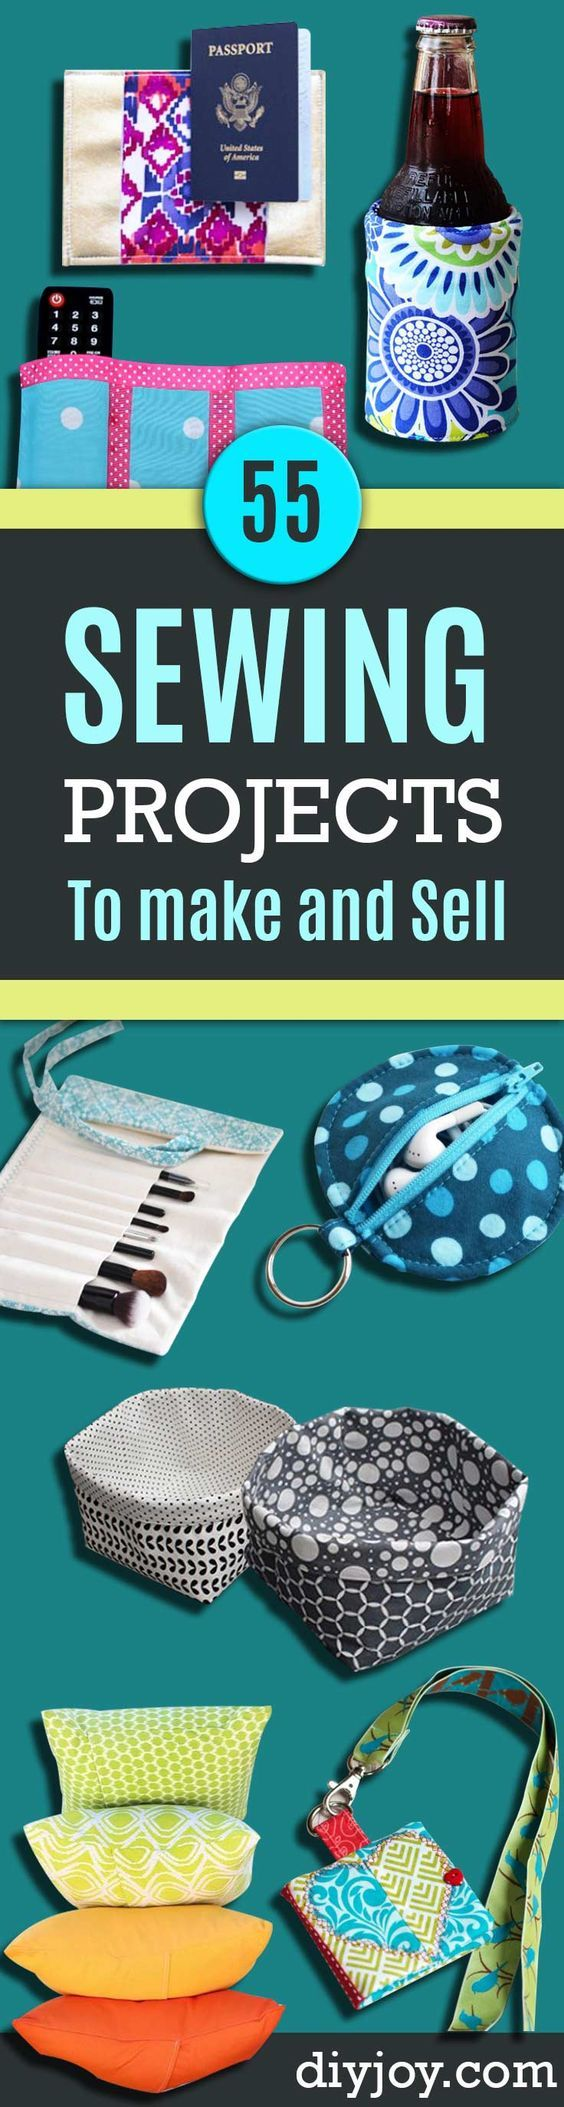 55 Sewing Projects To Make And Sell – Yes U Can DIY